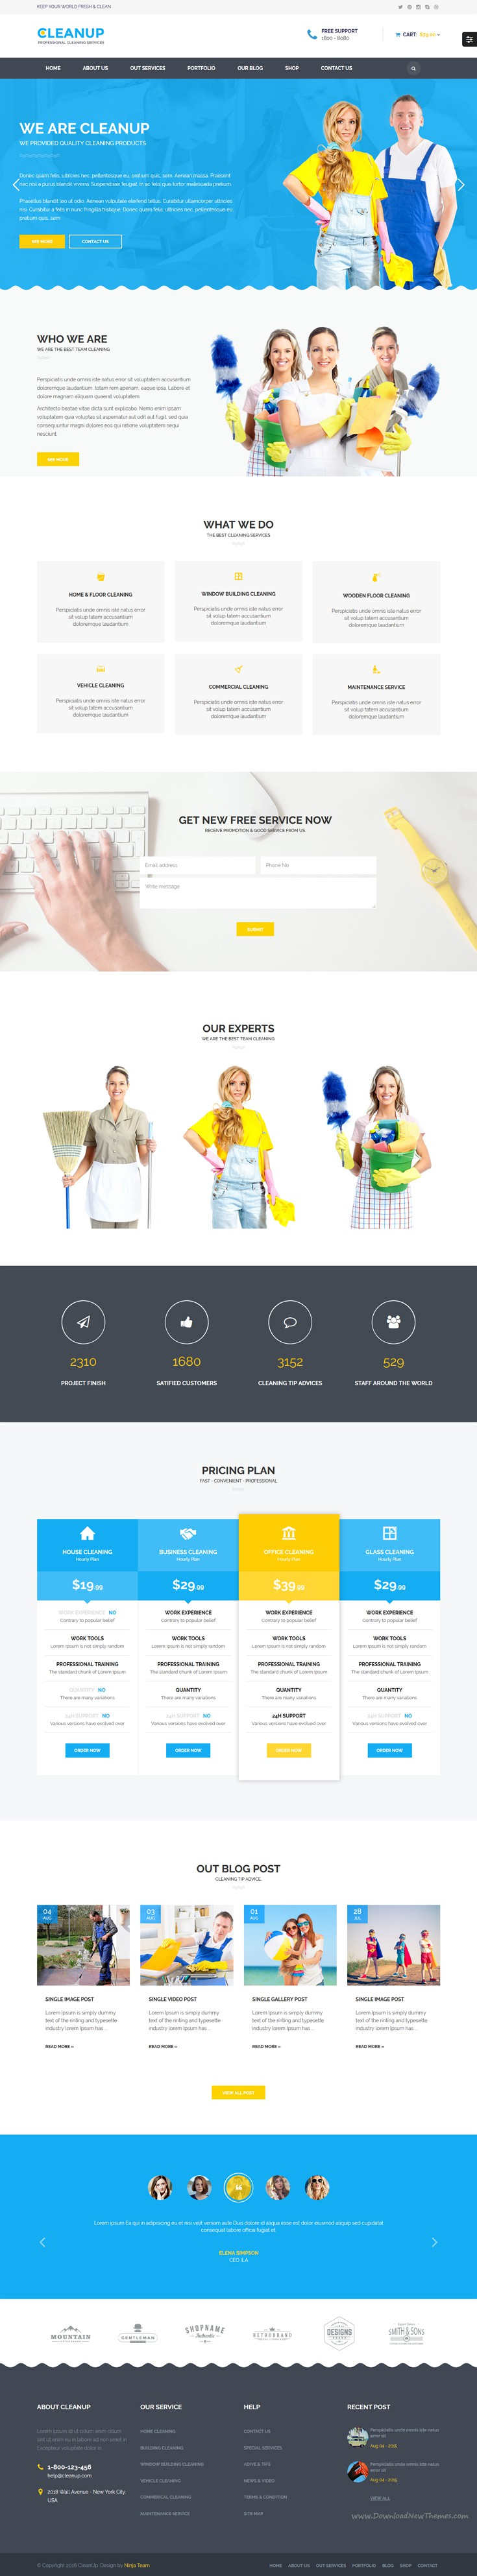 cleanup professional cleaning services html template cleaning cleanup is bootstrap html template designed specifically for cleaning services agency website